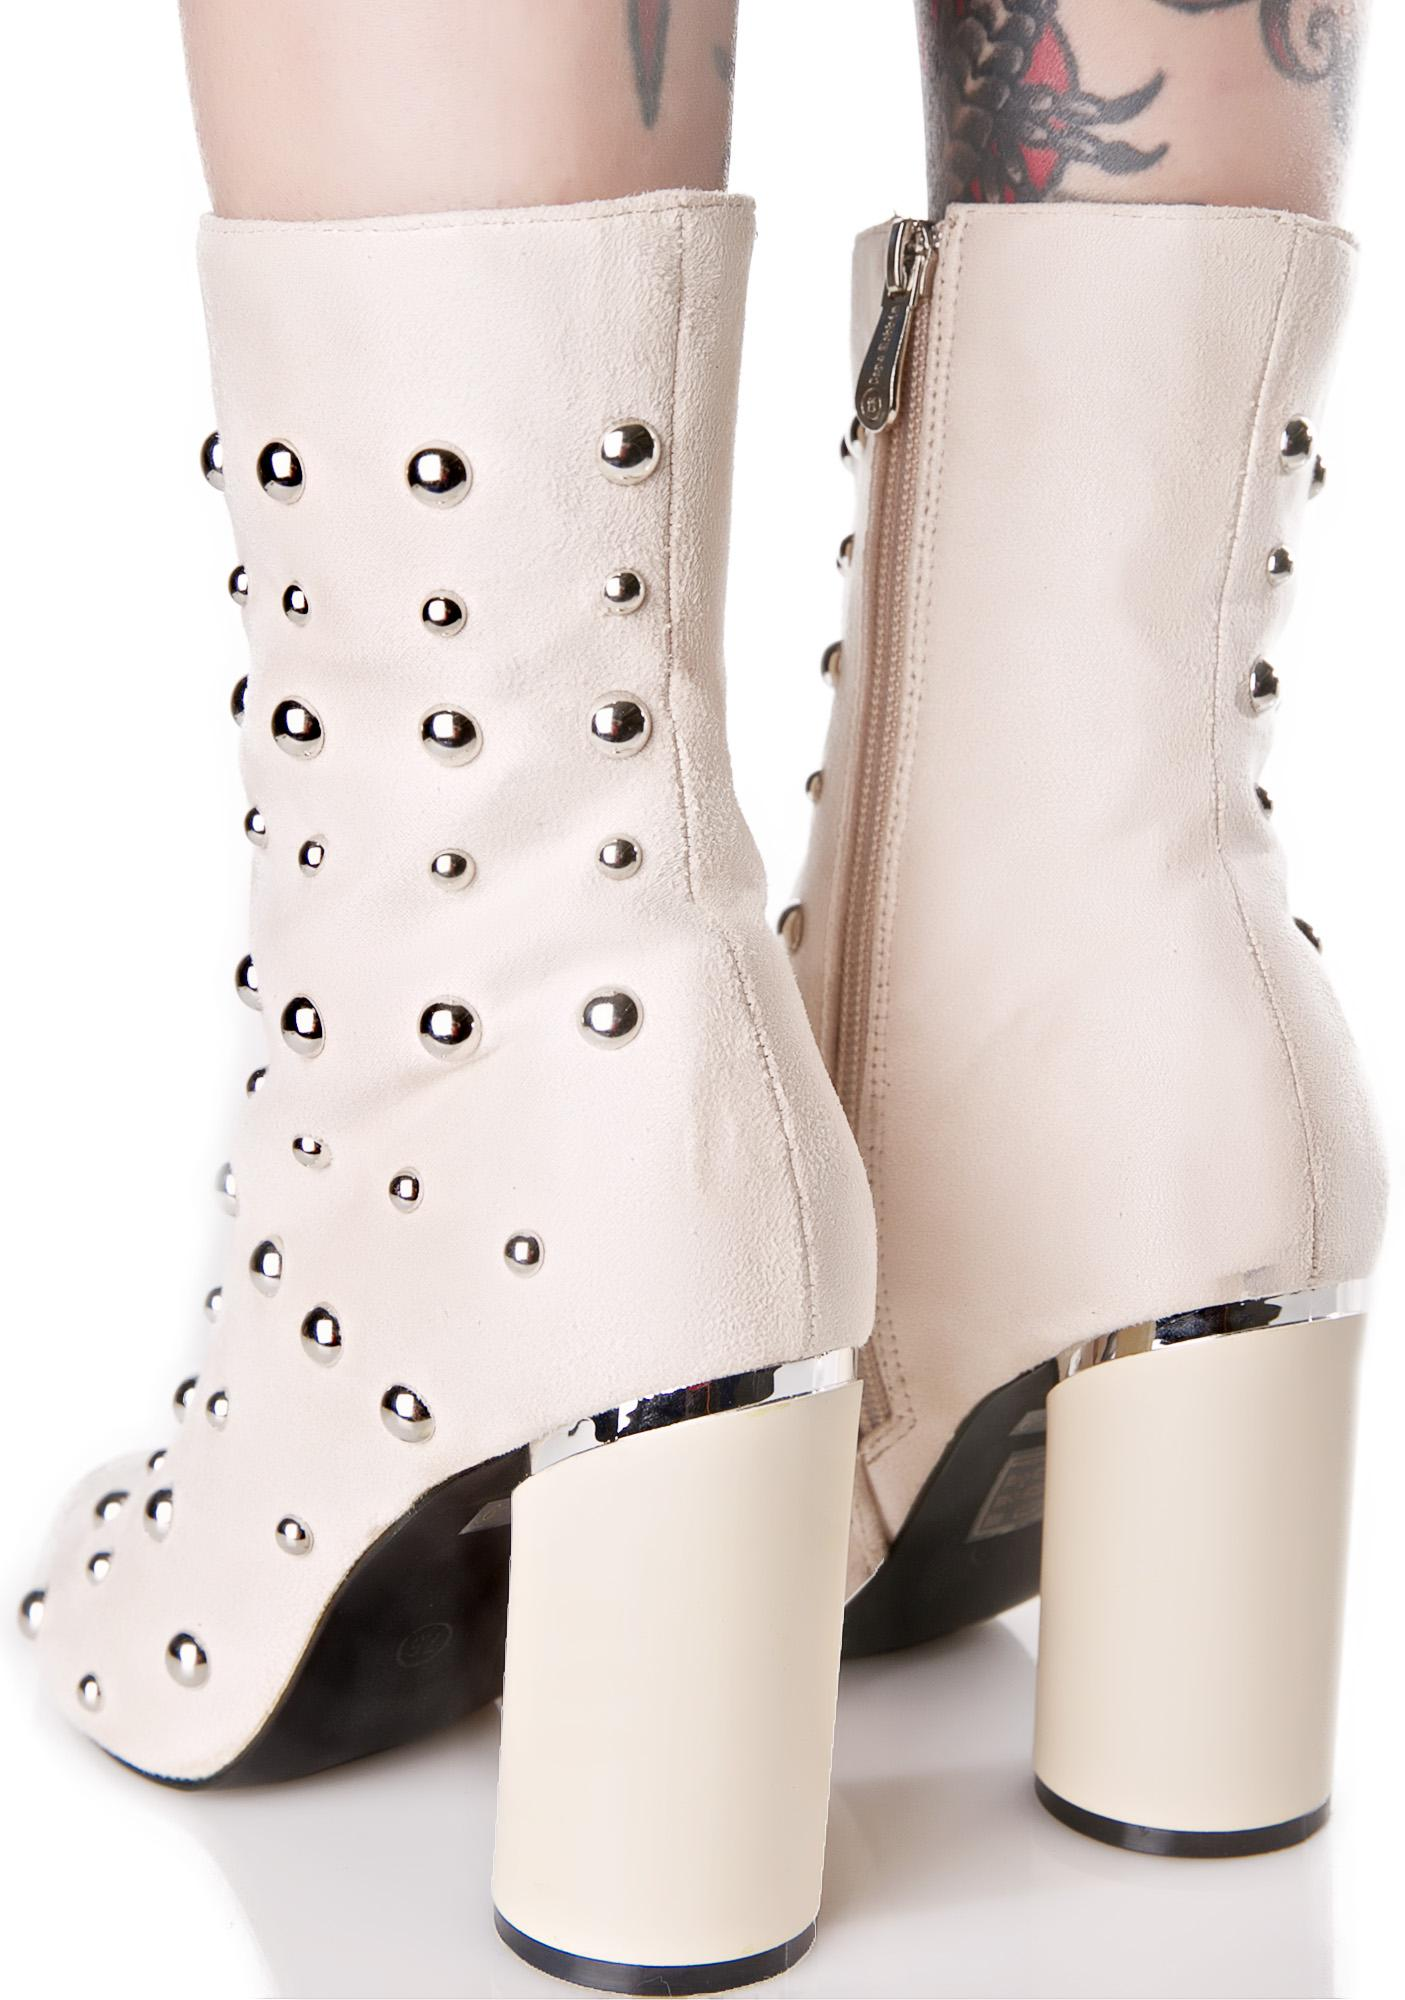 Nude Cerebral Studded Boots